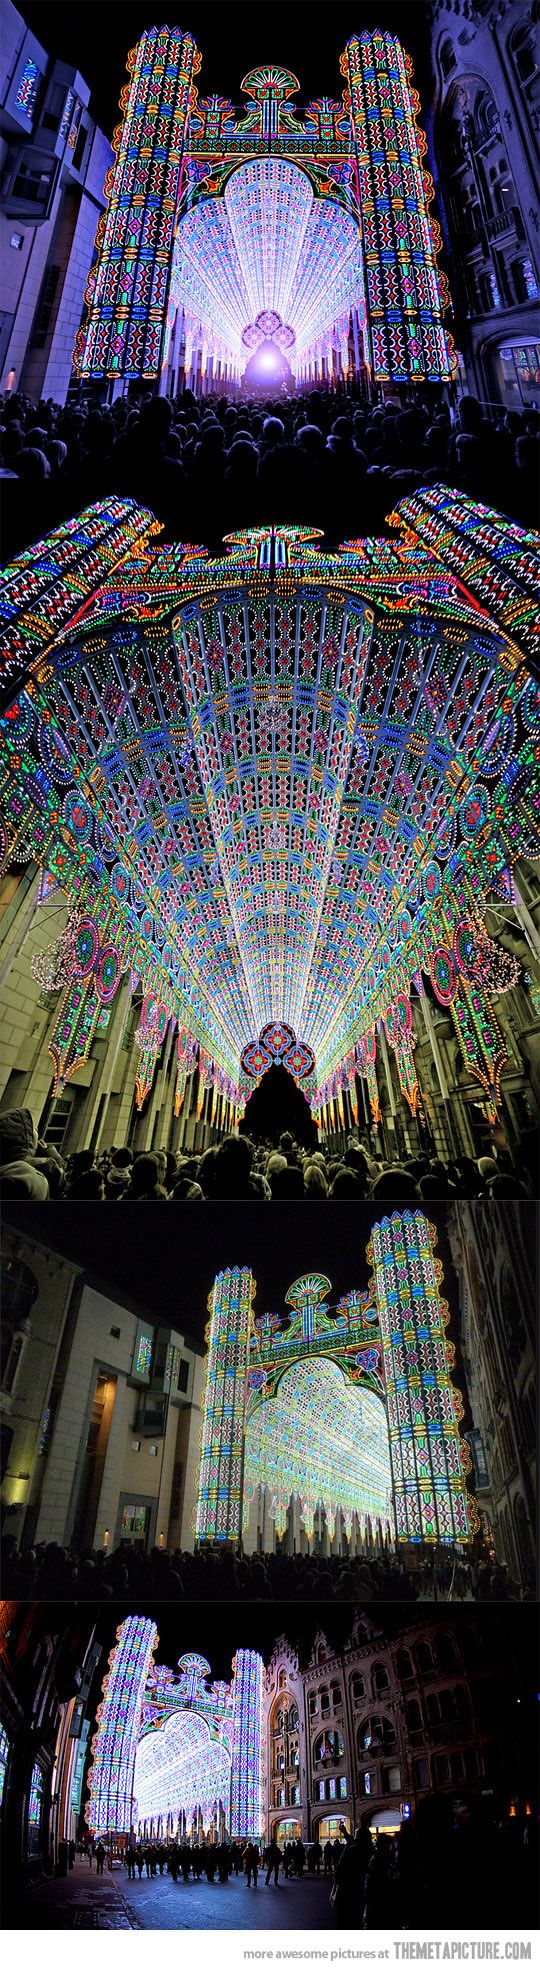 Light Festival in Ghent, Belgium. My daughter would love to see this!